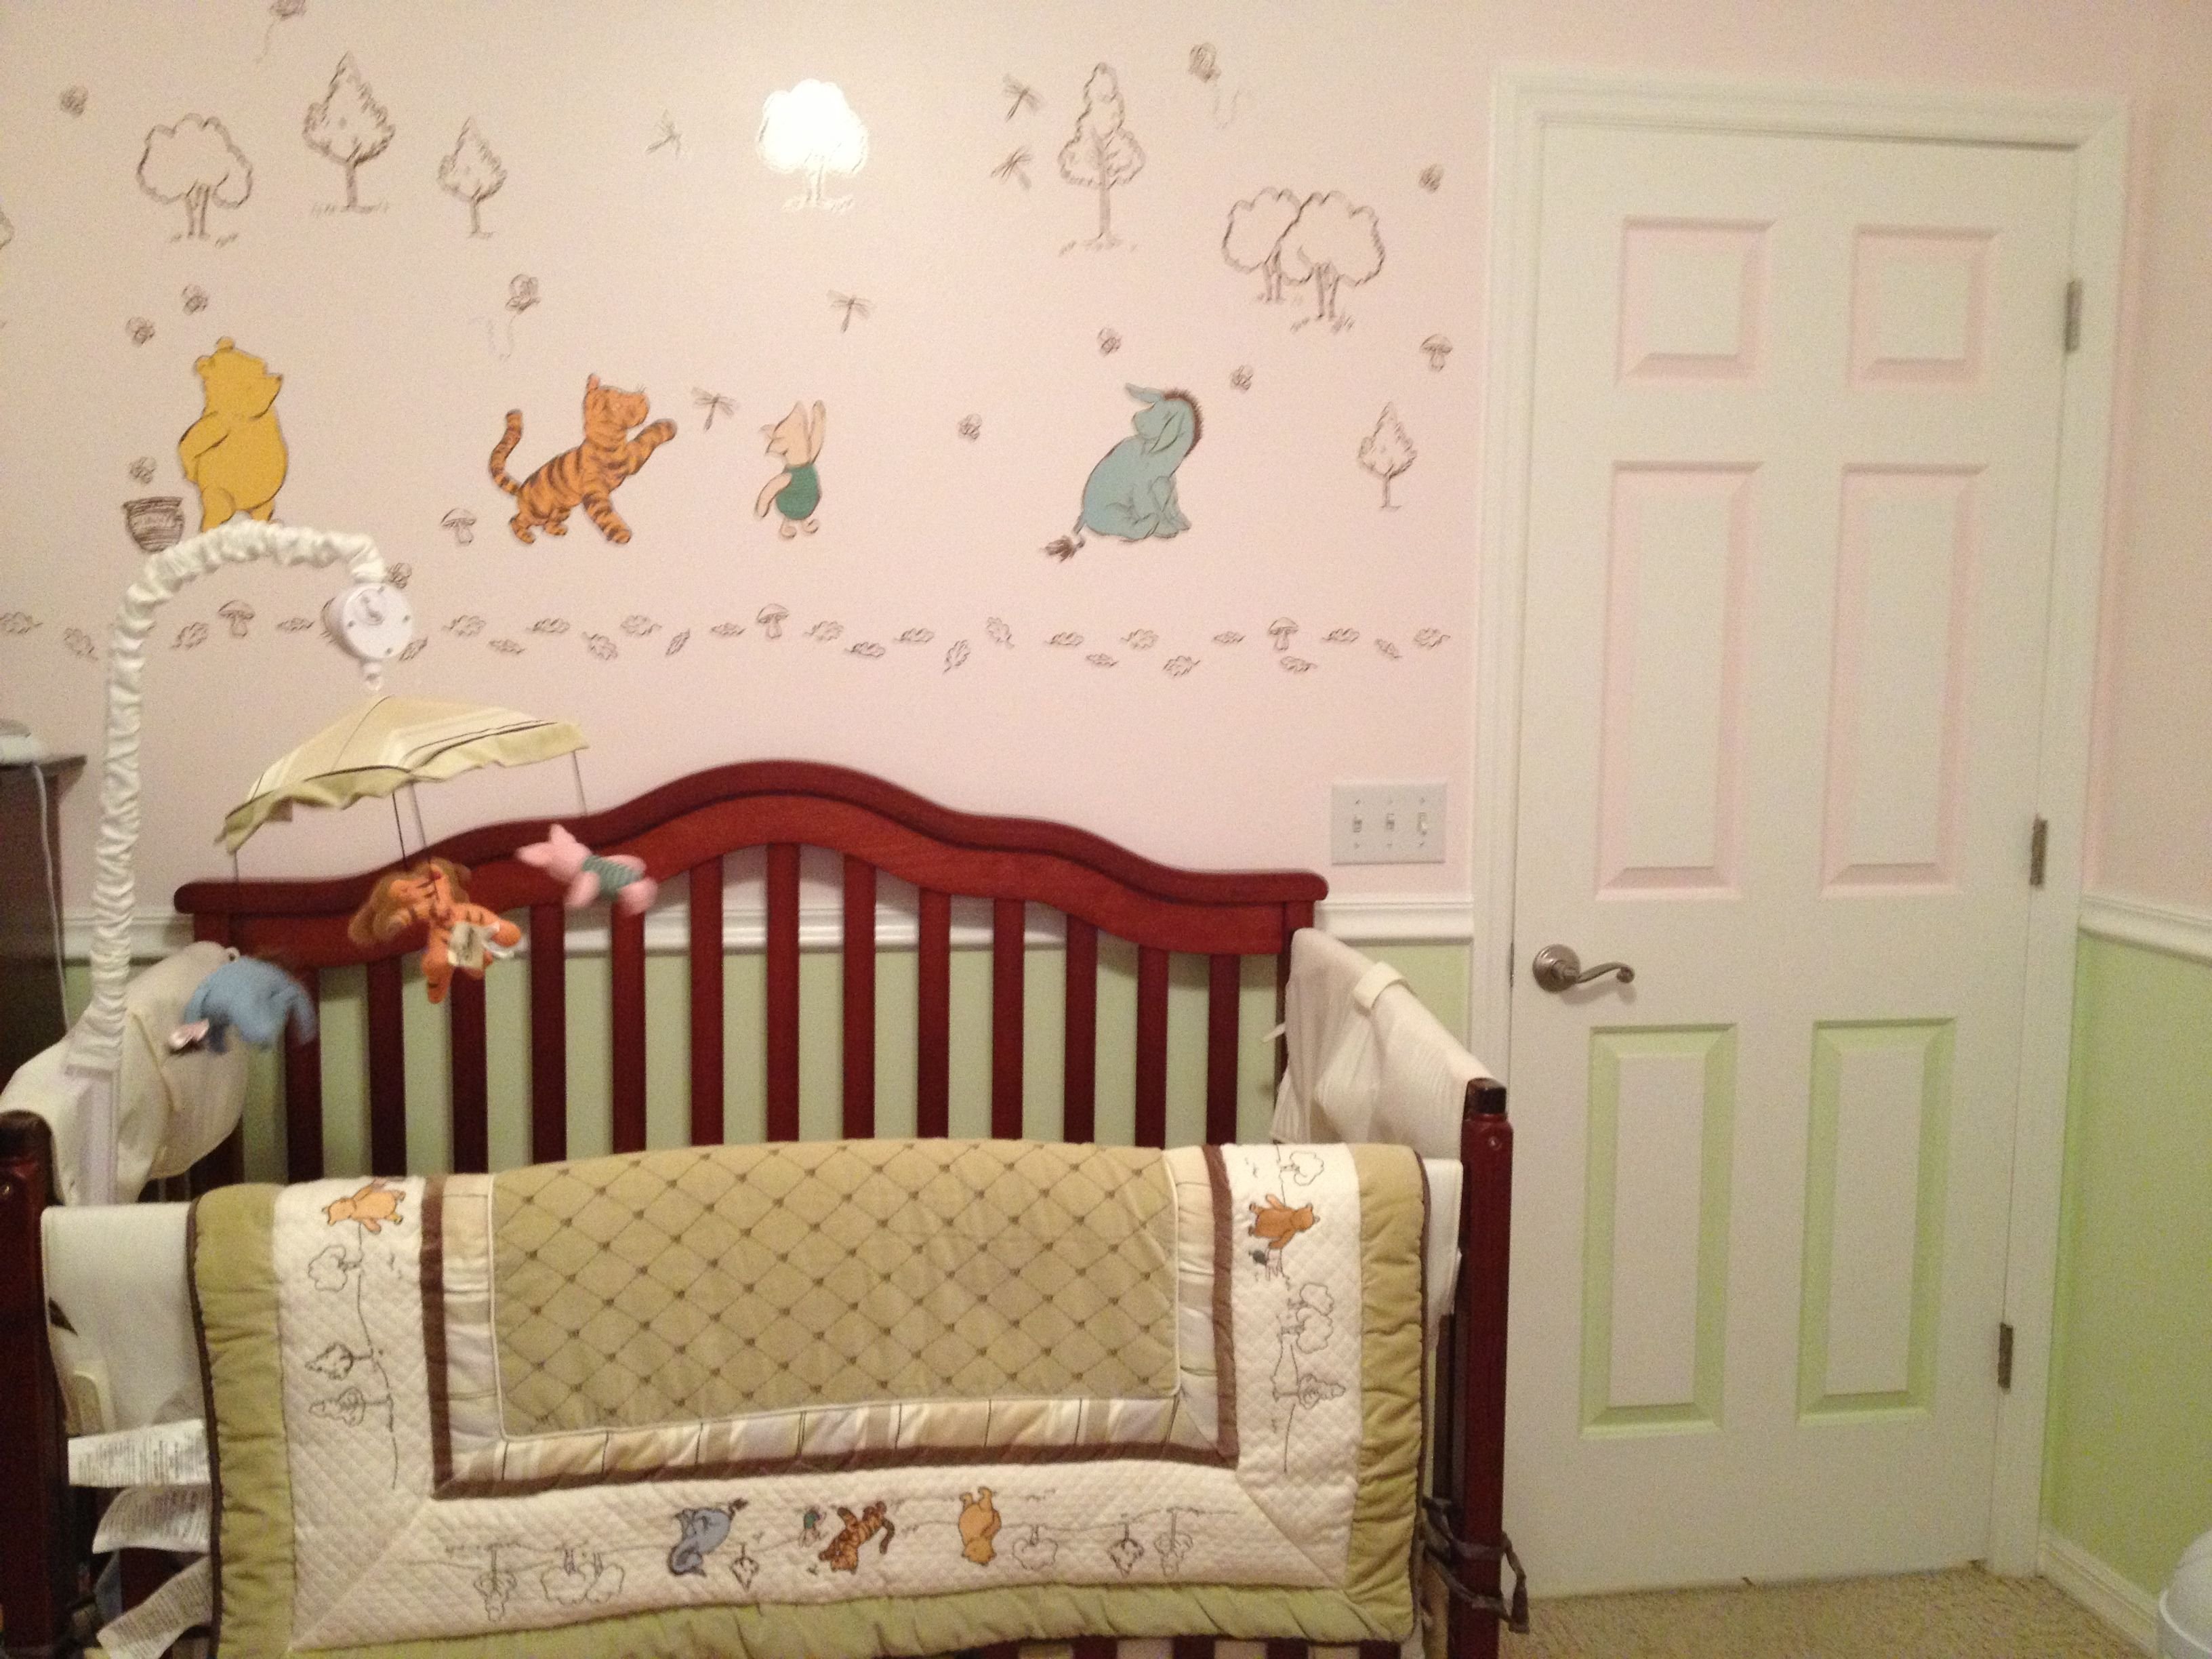 Winnie the pooh toddler bedding - Classic Winnie The Pooh Nursery Set Neutral Made For Girl With Pink And Green Wall